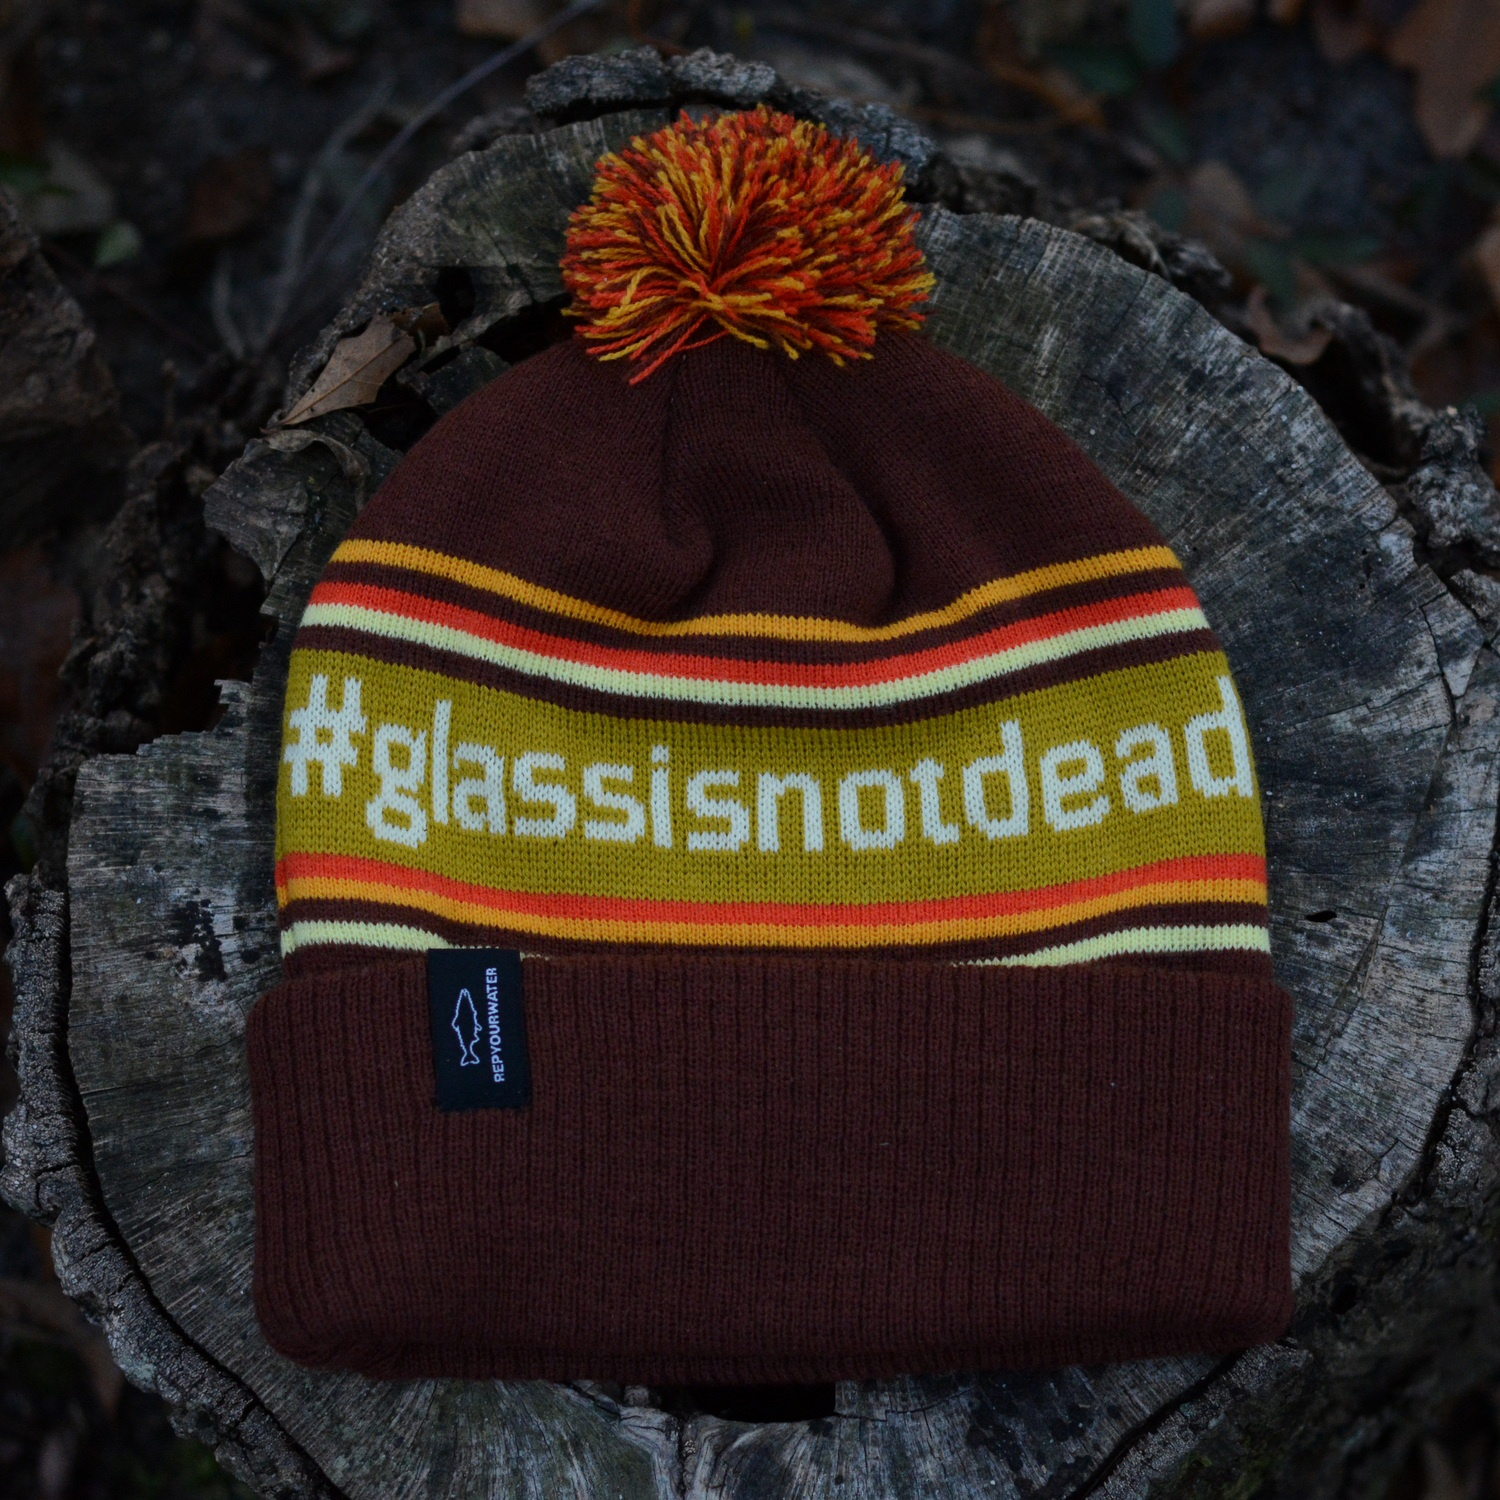 44719f278827d I am digging the colors of this year s knit hat for sure and appreciate the  hard work of Rep Your Water to get it so right.